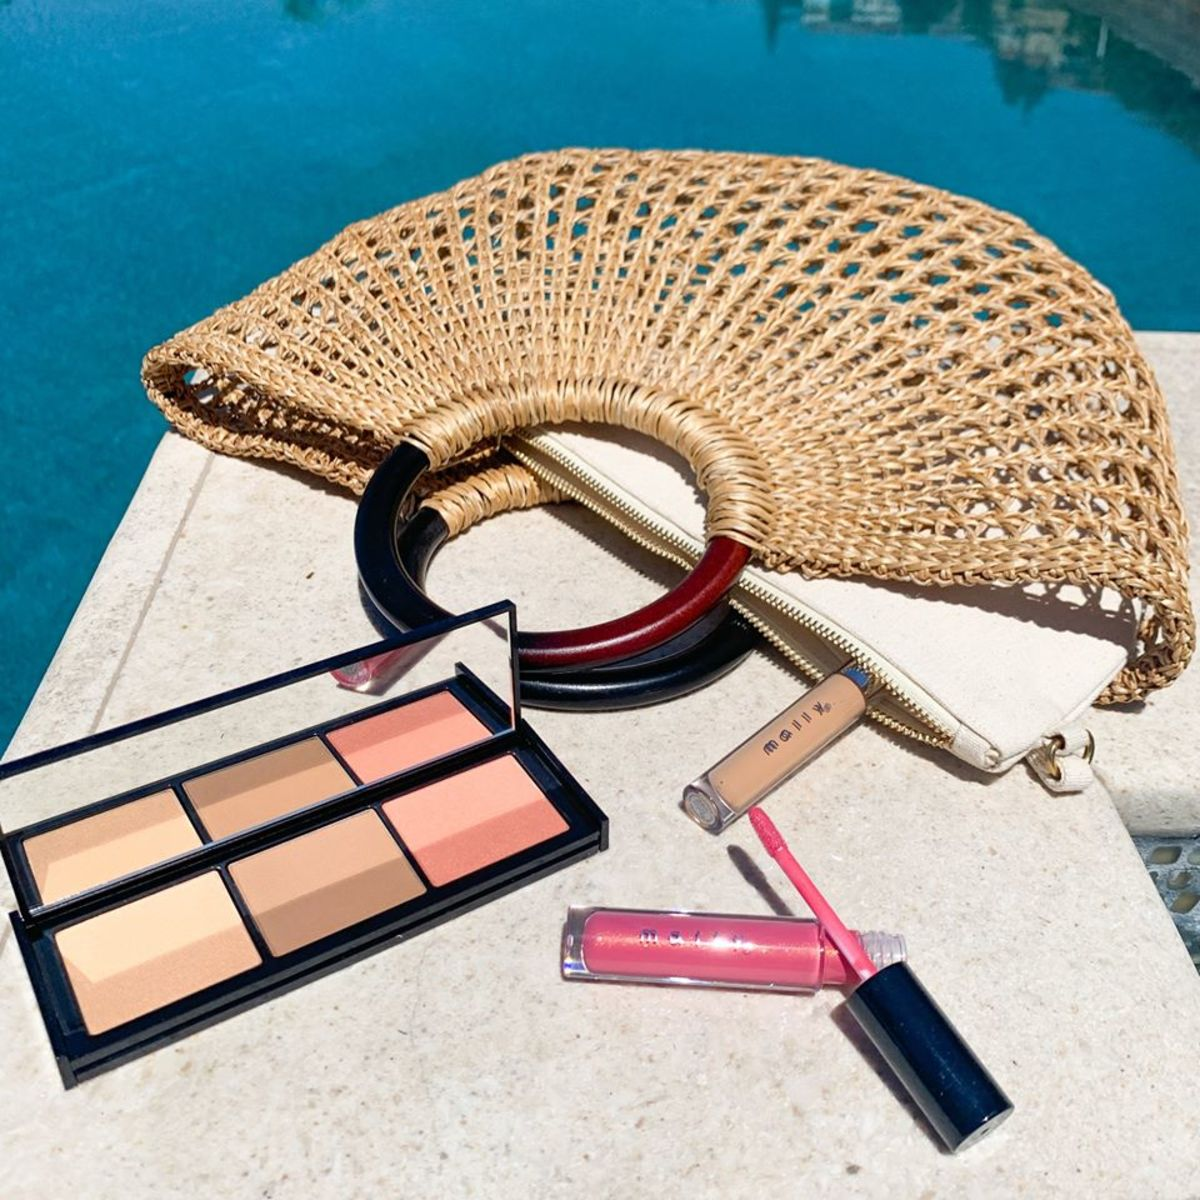 Summer Beauty Tips from Mally Roncal